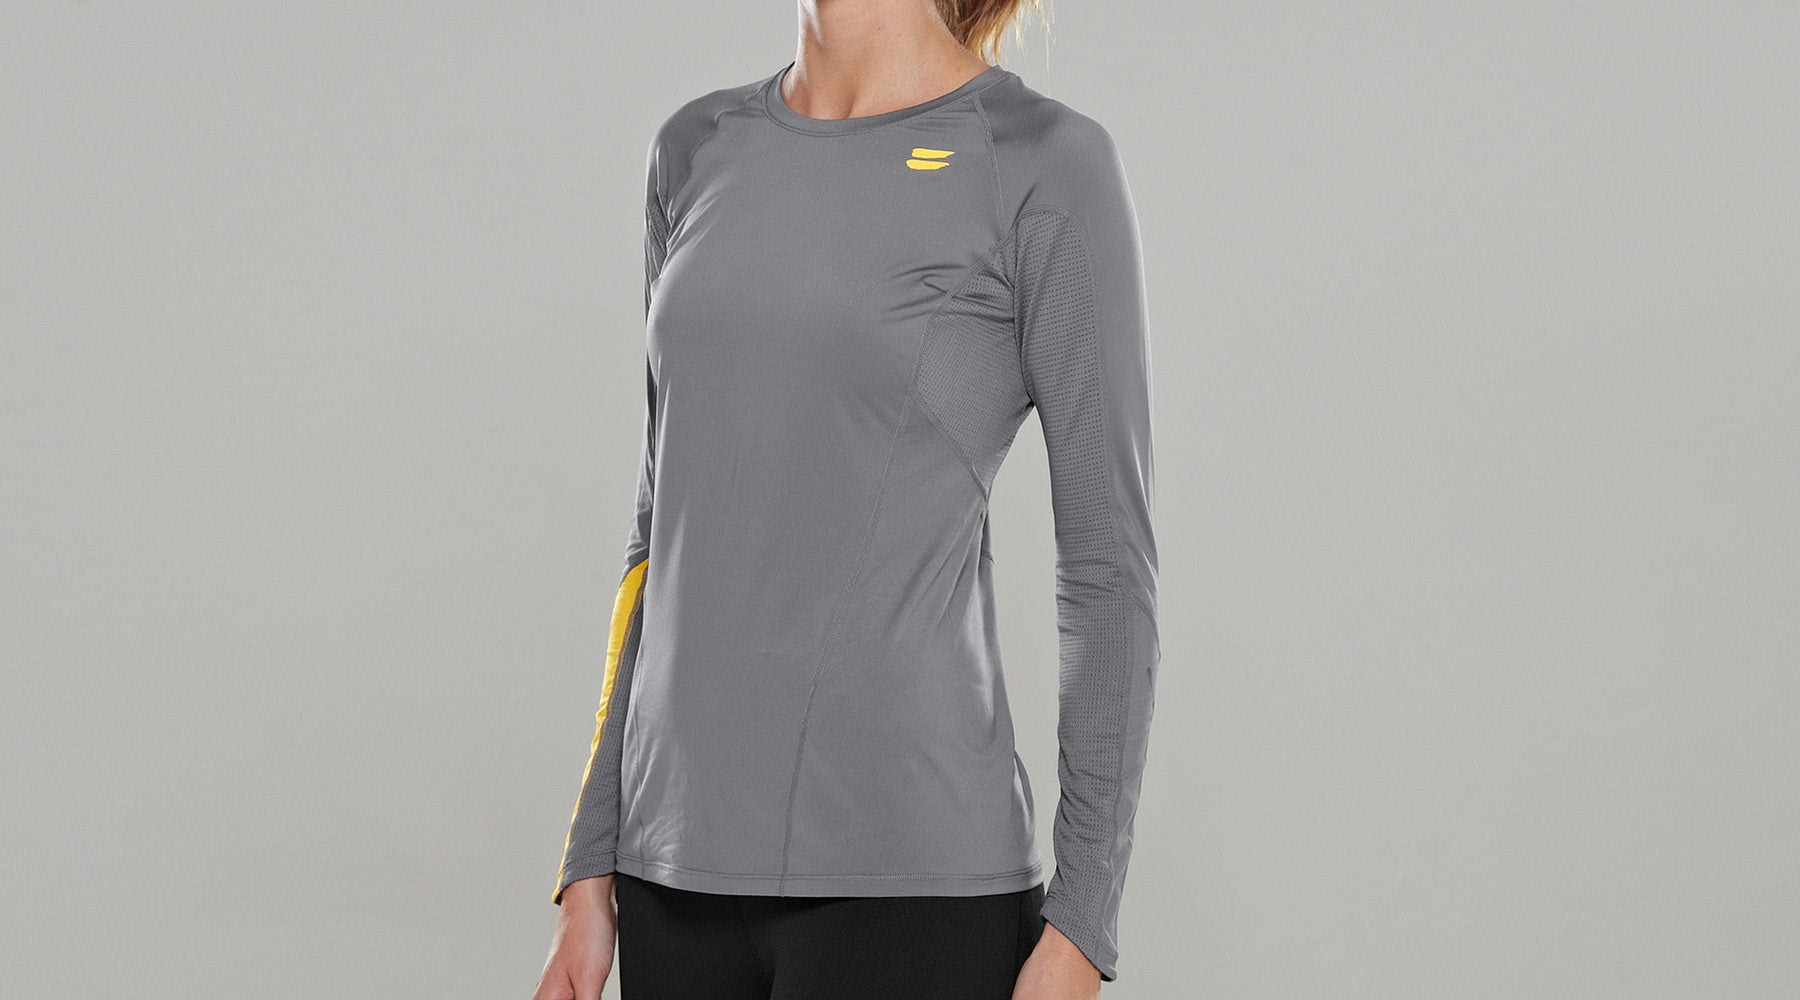 Tribesports Core Women's Long Sleeve Top Charcoal  5